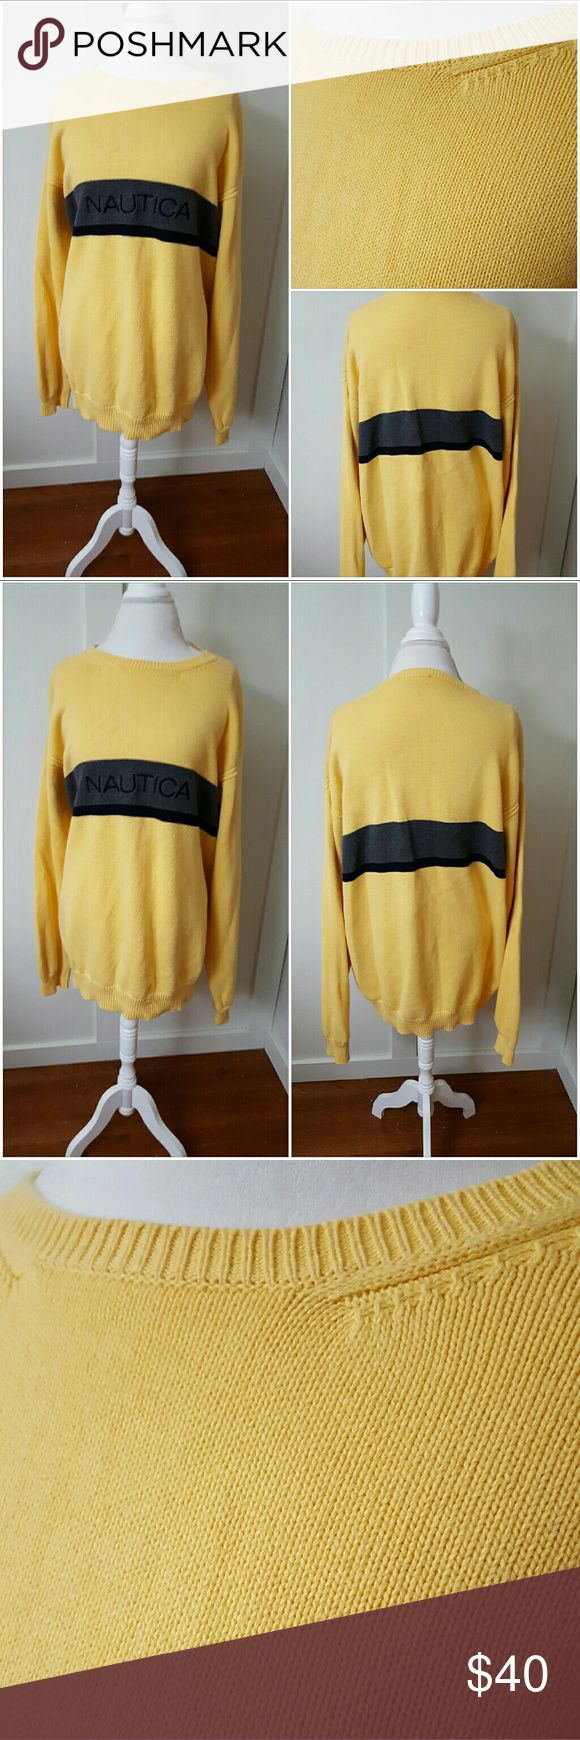 Nautica Men's XXL Yellow Sweater with Gray Stripe Nautica men's XXL yellow sweater with a gray and black stripe through the middle. Says Nautica in the stripe. Long sleeves. Crew neck. Pre-owned and in good condition. 100% Cotton Nautica Sweaters Crewneck